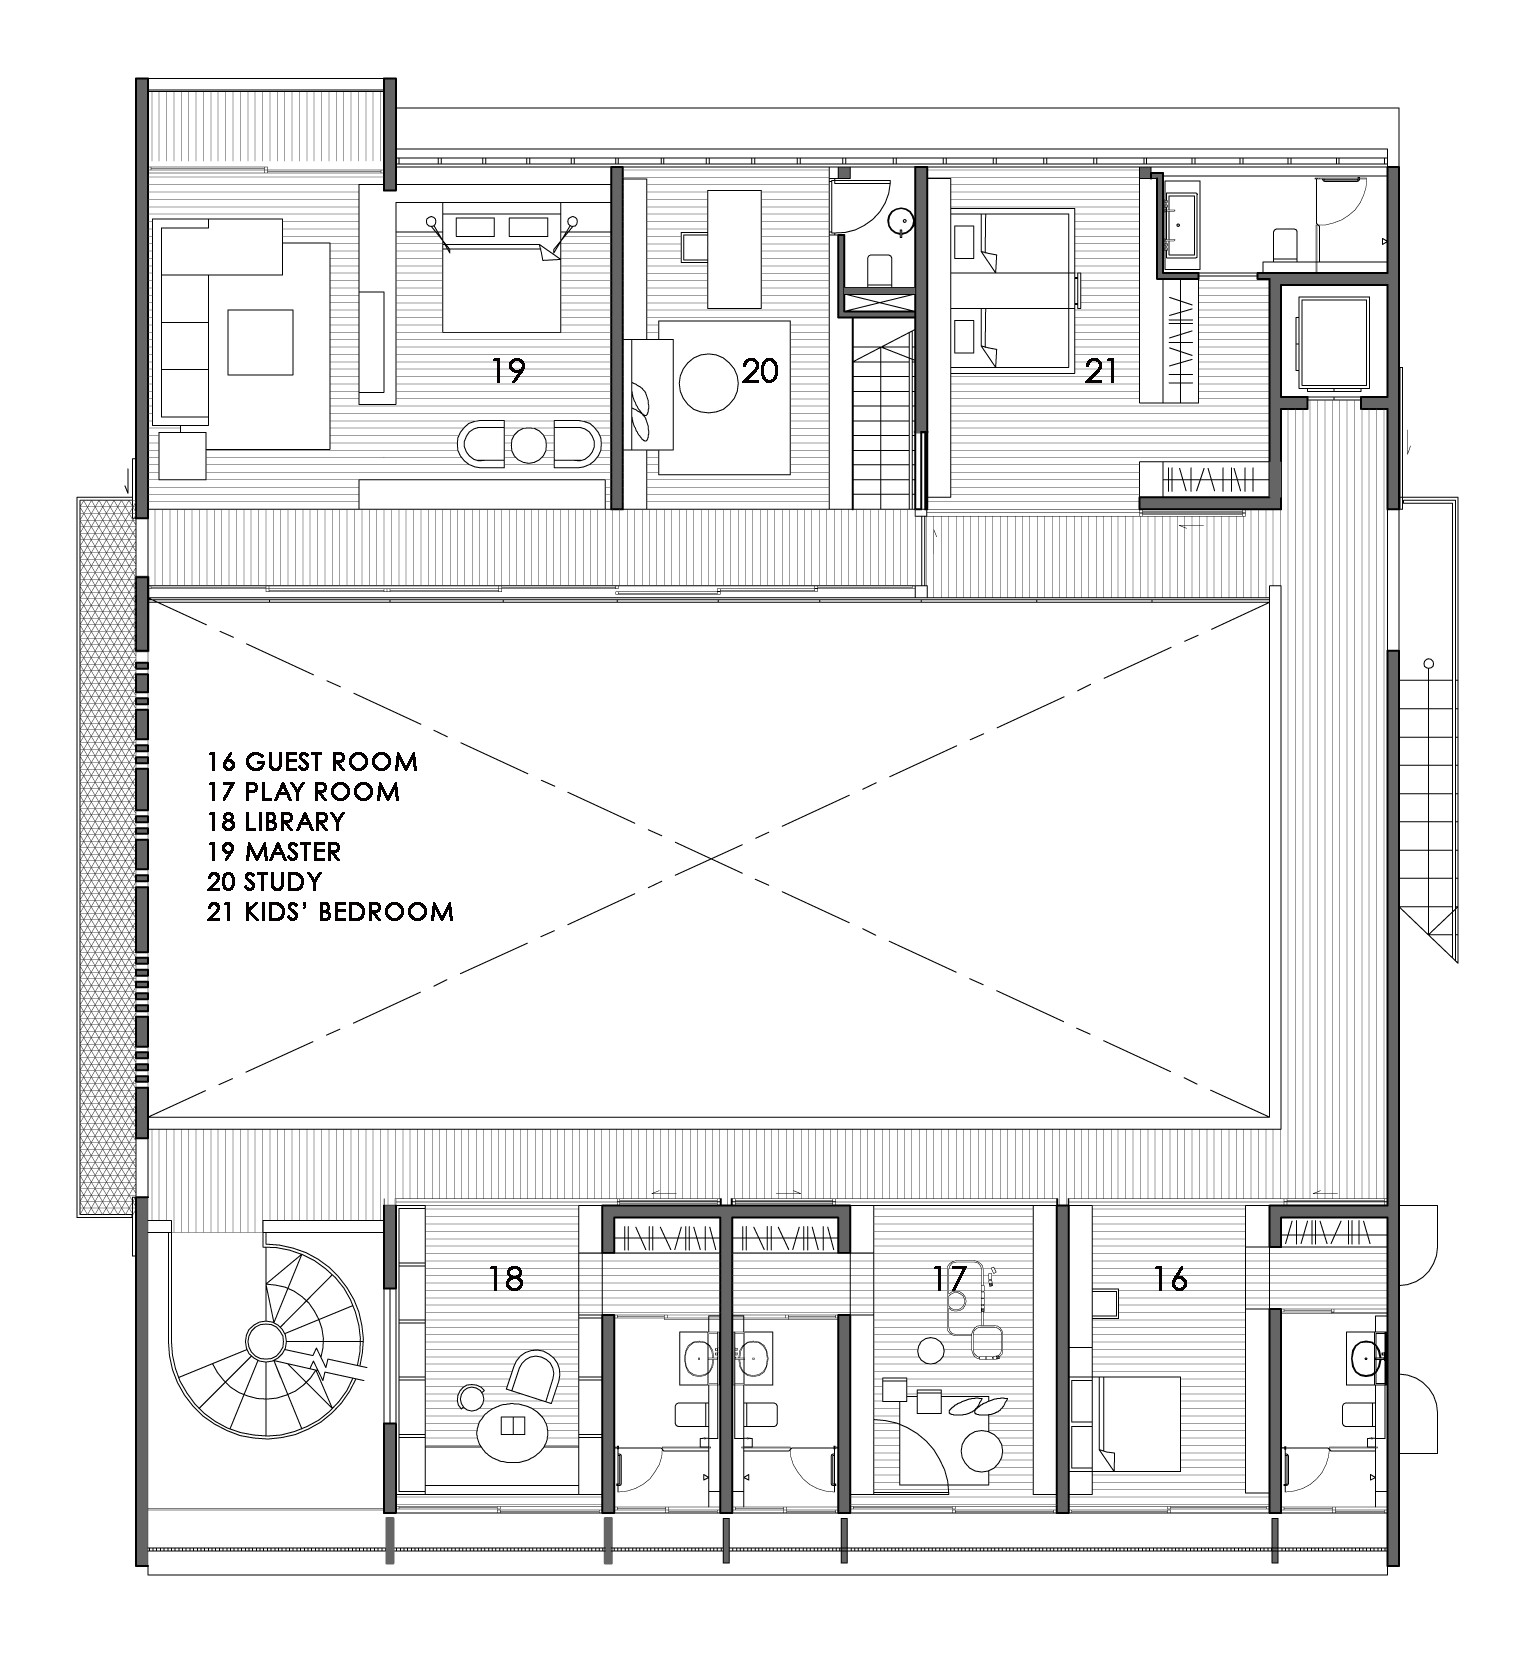 gallery of the courtyard house formwerkz architects 13 the courtyard house formwerkz architects 13 17 second floor plan